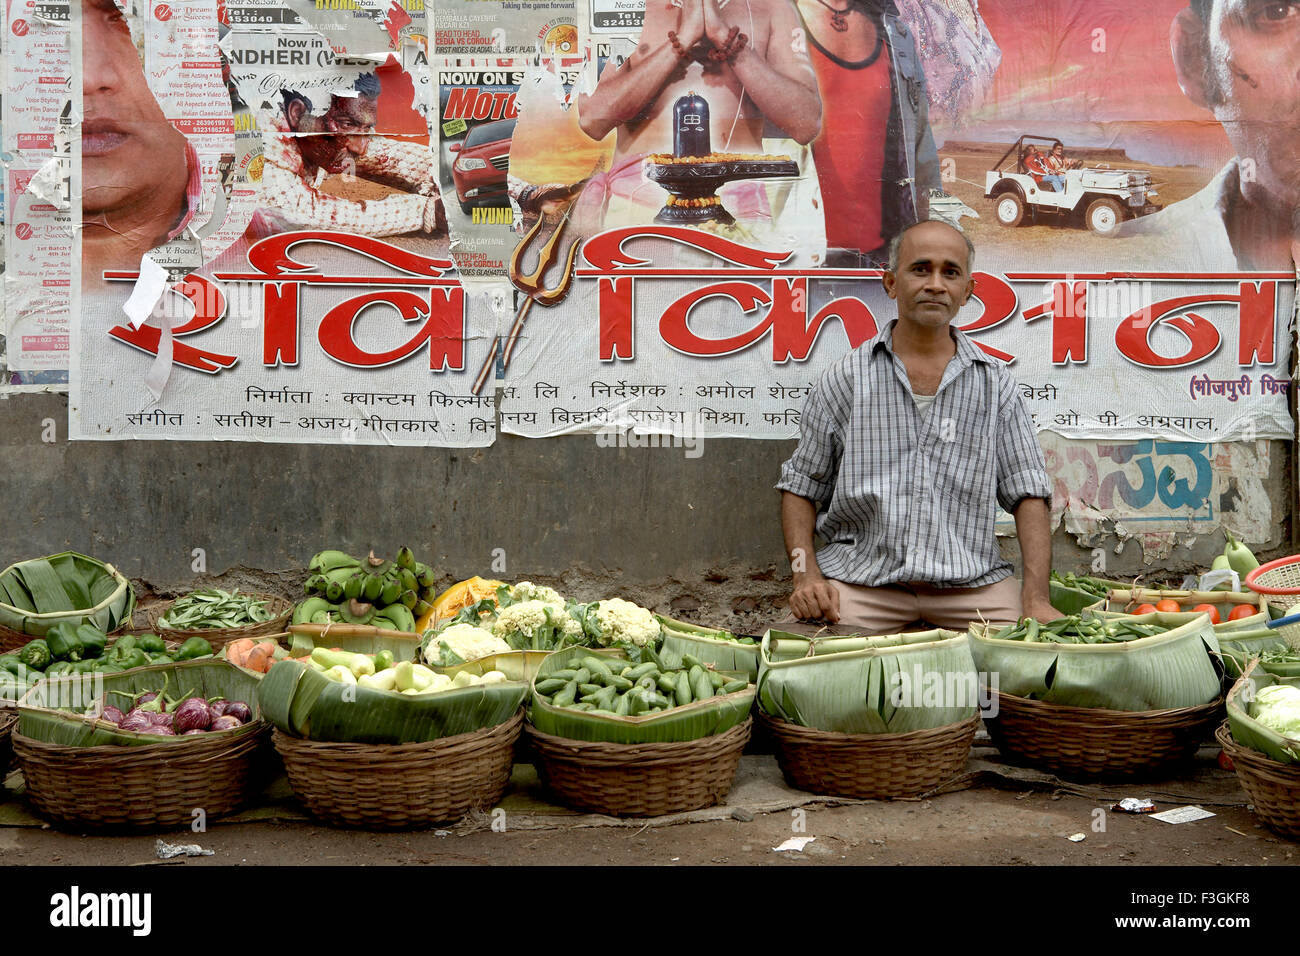 A Bollywood film poster on the wall serves as an interesting backdrop for a vegetable vendor ; Mumbai Bombay - Stock Image